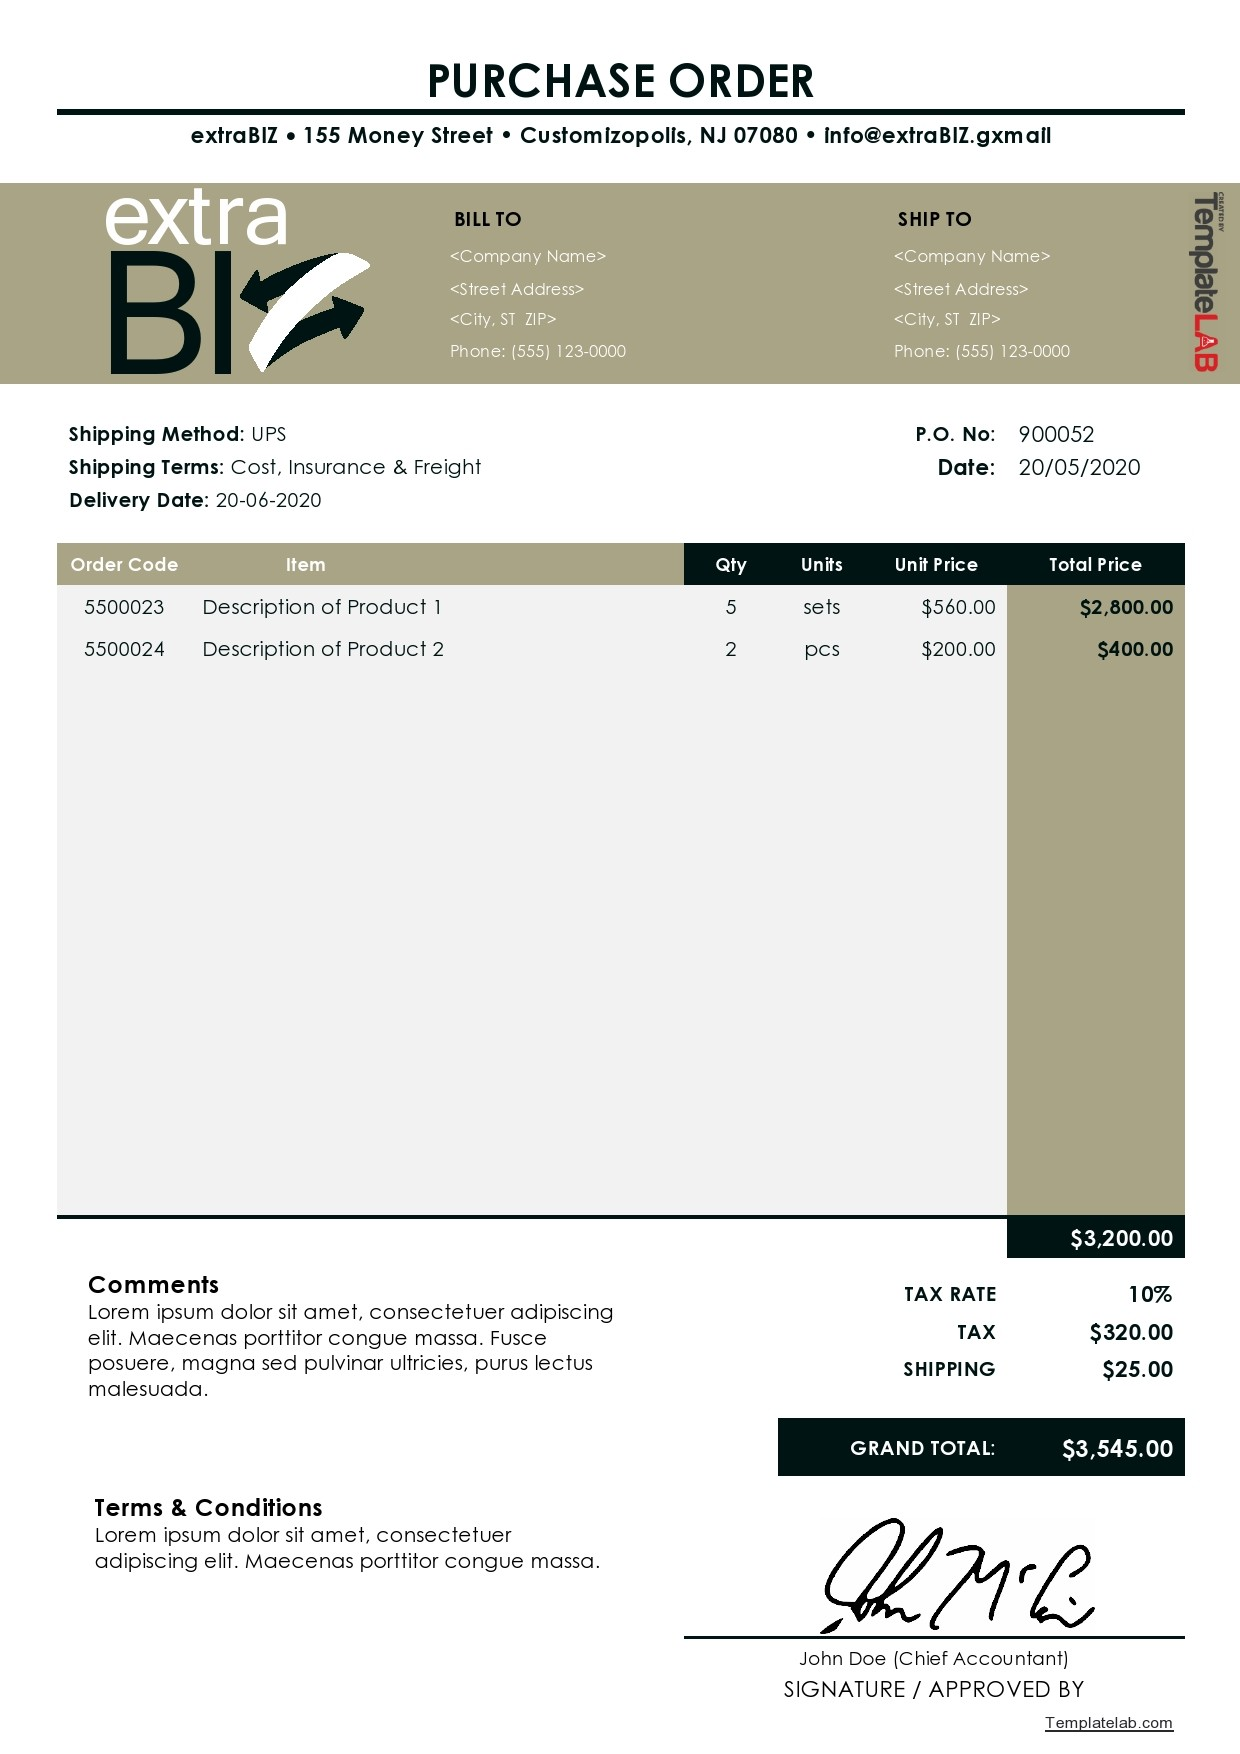 Free Purchase Order Template 03 - TemplateLab.com